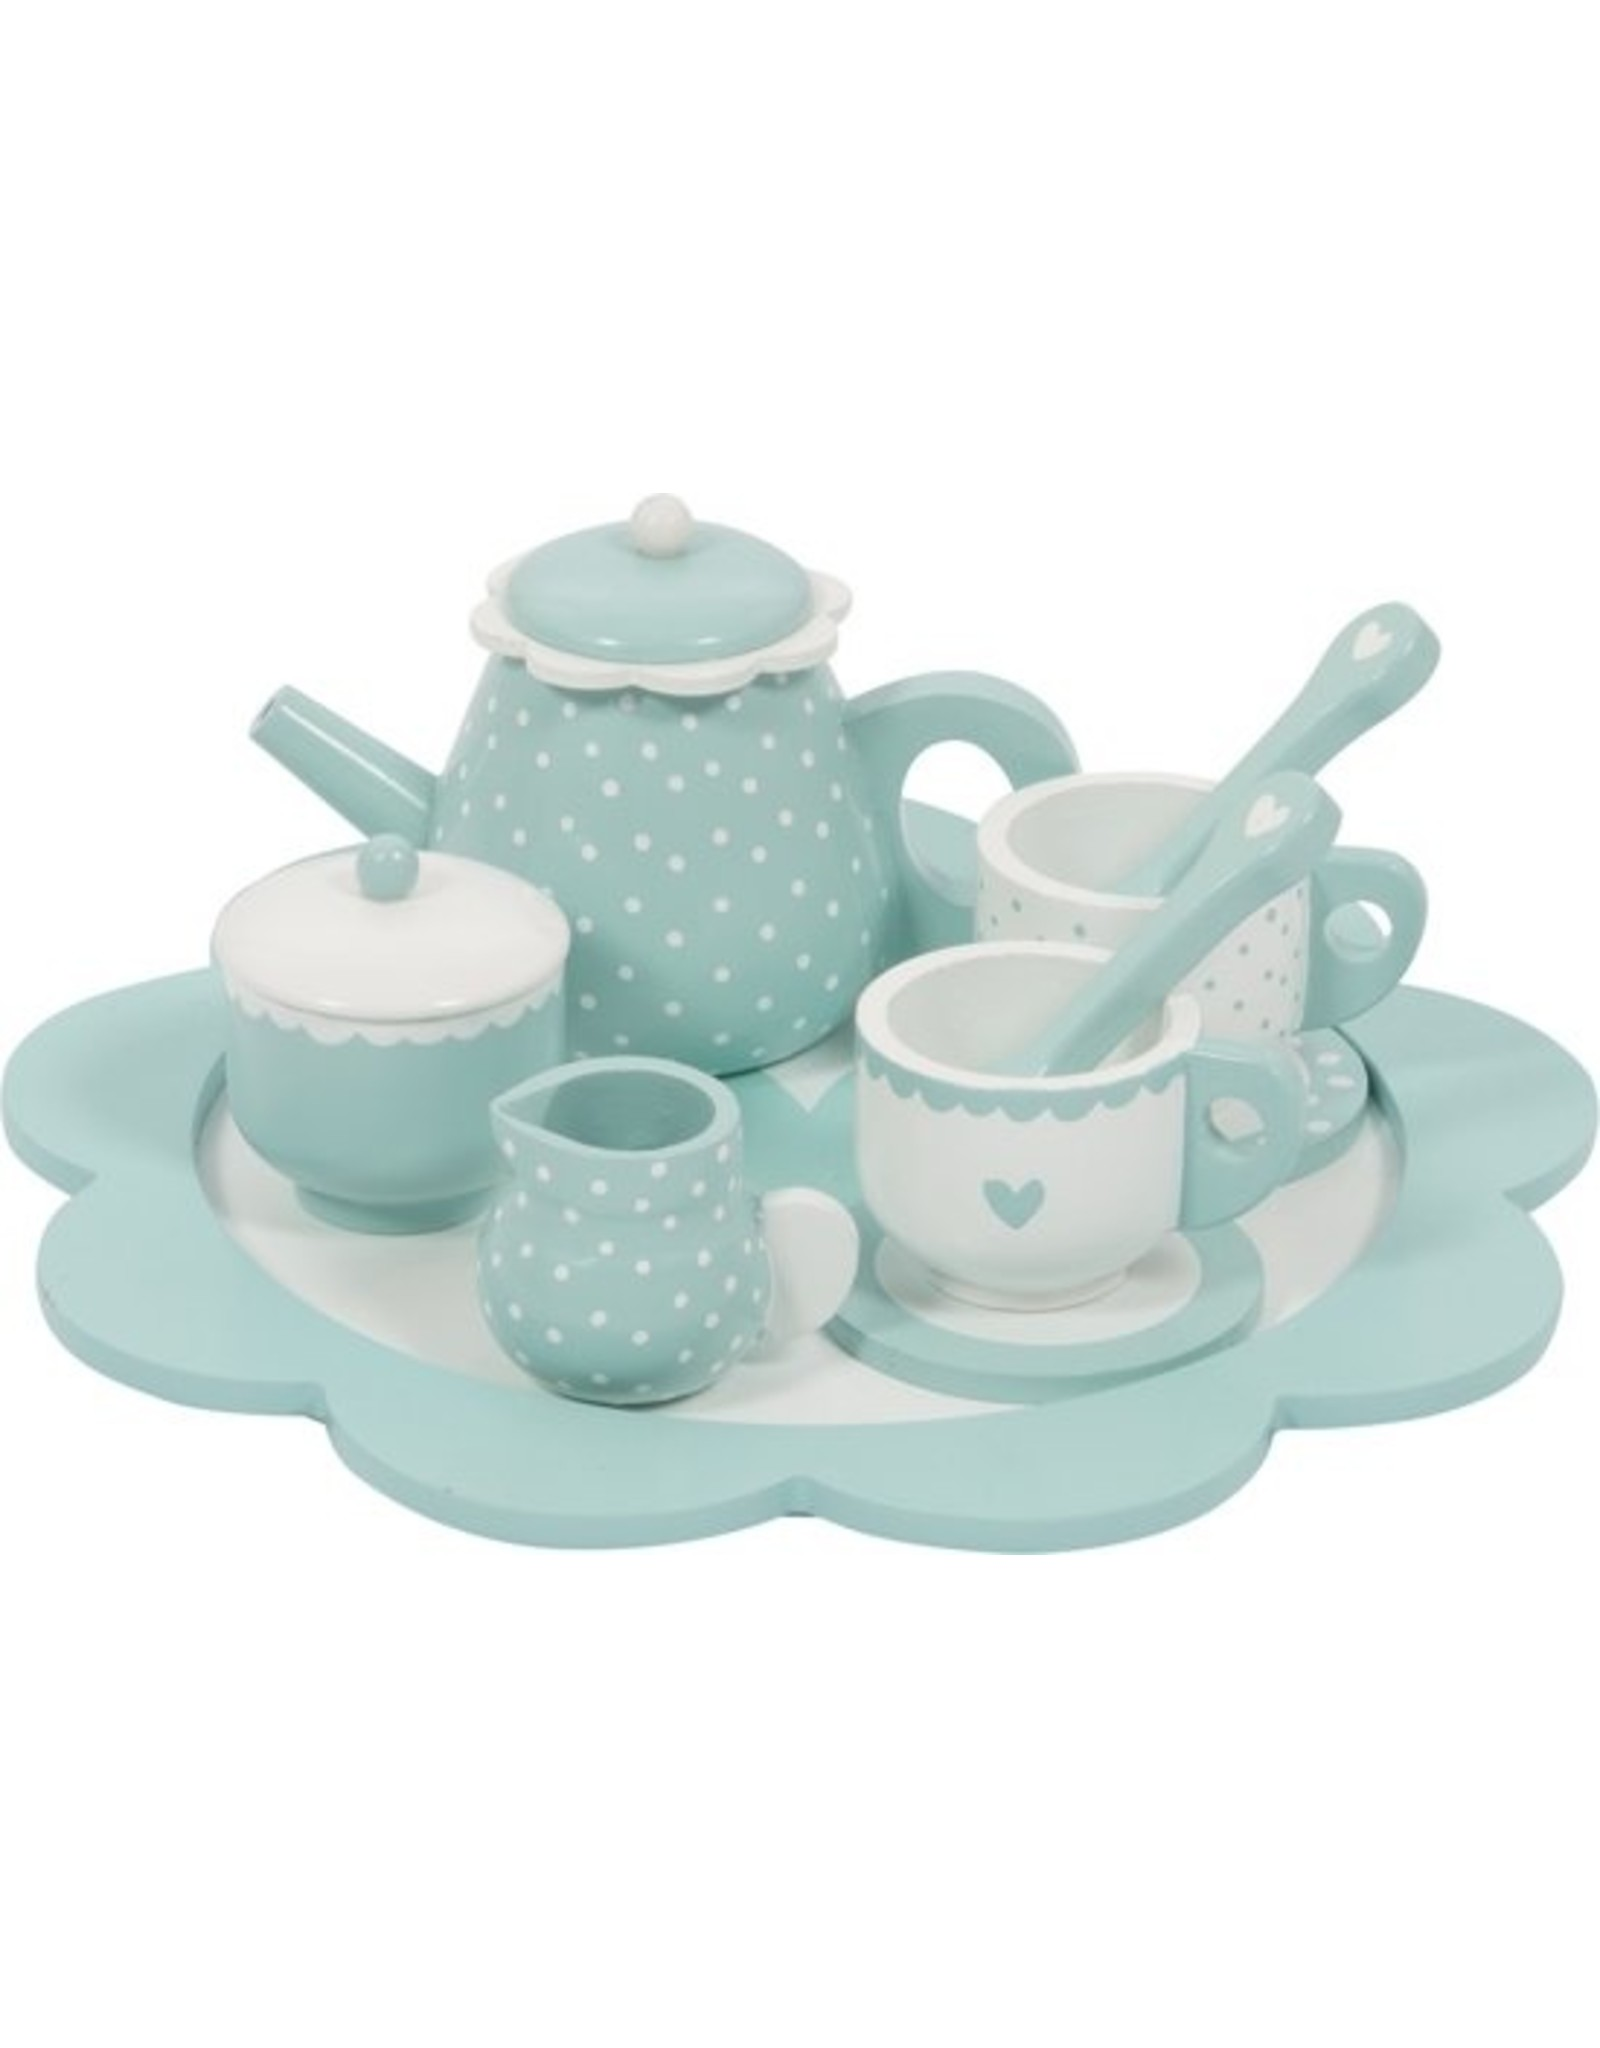 Theeservies Hout- Mint